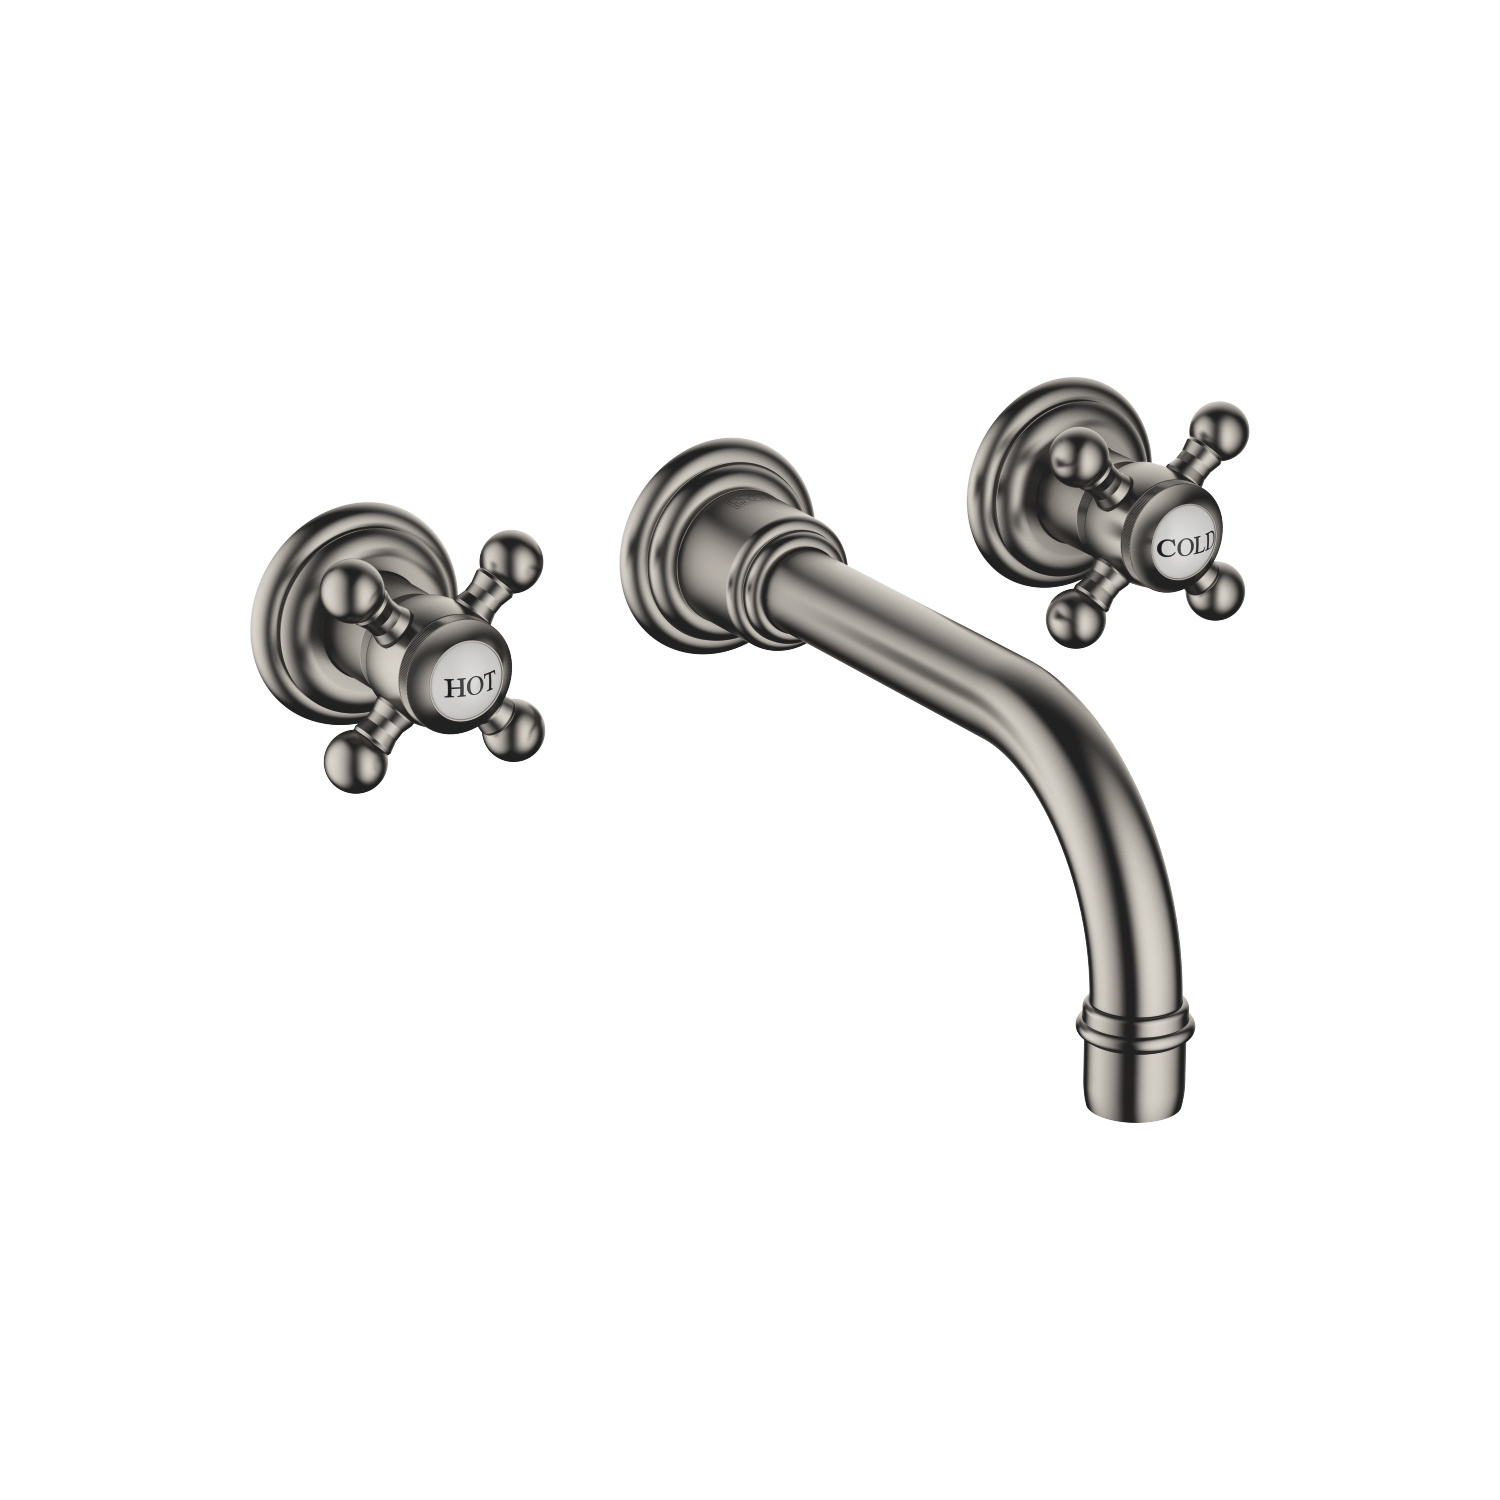 Wall-mounted basin mixer without pop-up waste - Dark Platinum matt - 36 712 361-99